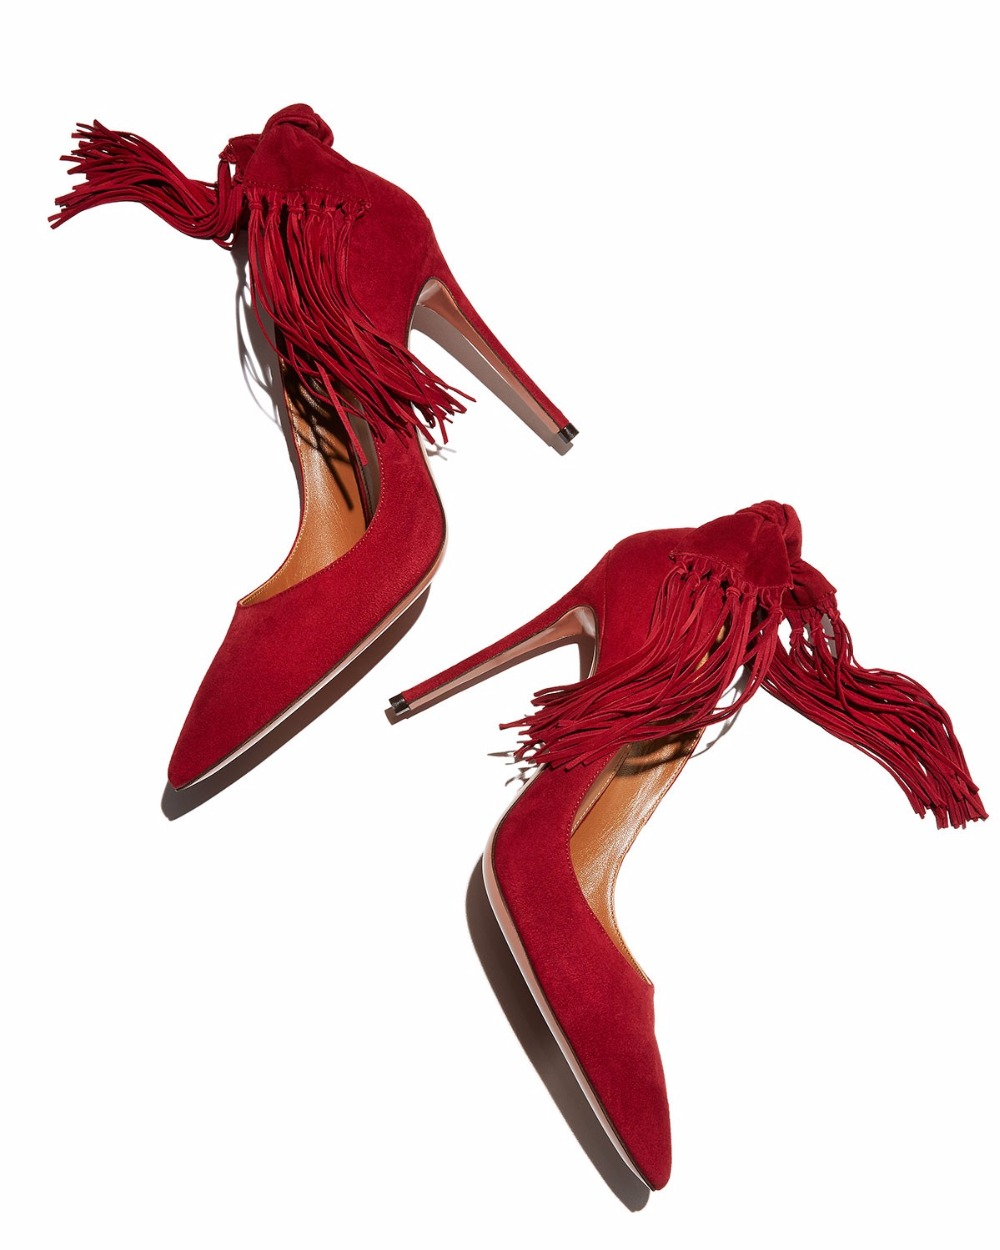 Woman High heel shoes suede fringed stiletto heels red wedding Shoes pointed toe bowtie high heels tassel pumps new fashion runway bowtie high heel shoes 2017 round toe crystal embellished stiletto heels woman sexy high heel shoes